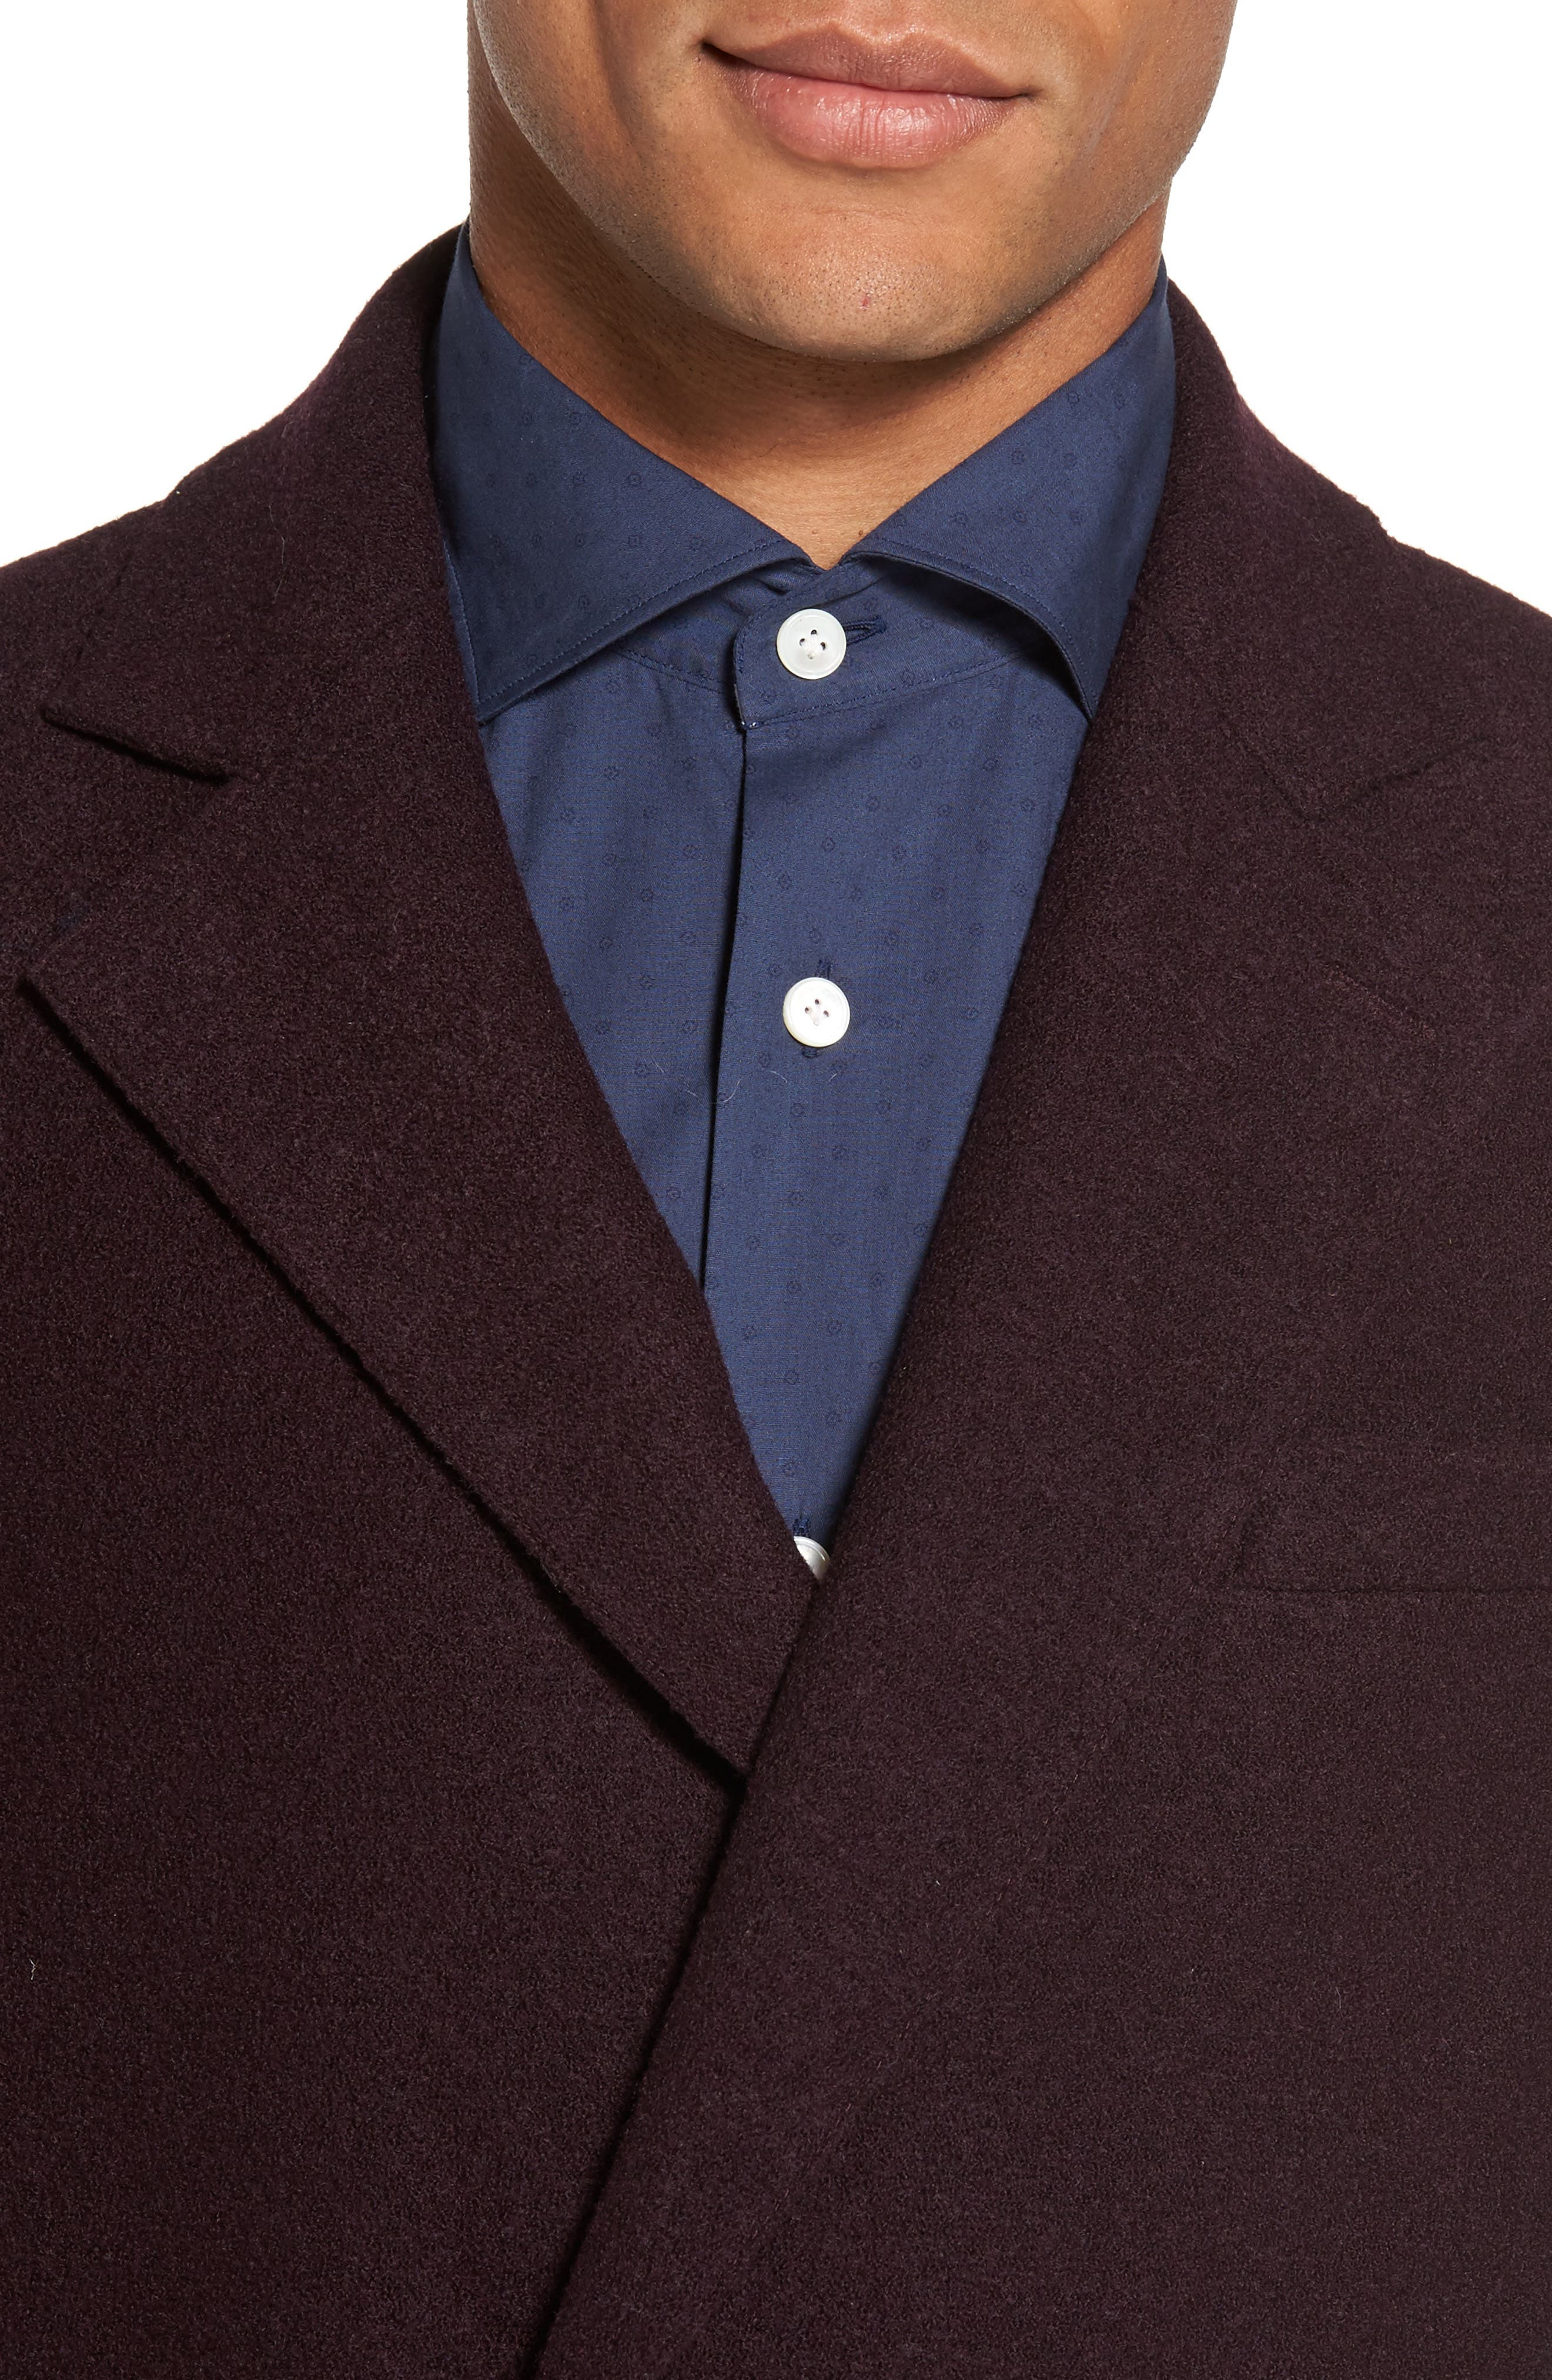 Boiled Wool Double Breasted Topcoat,                             Alternate thumbnail 4, color,                             930